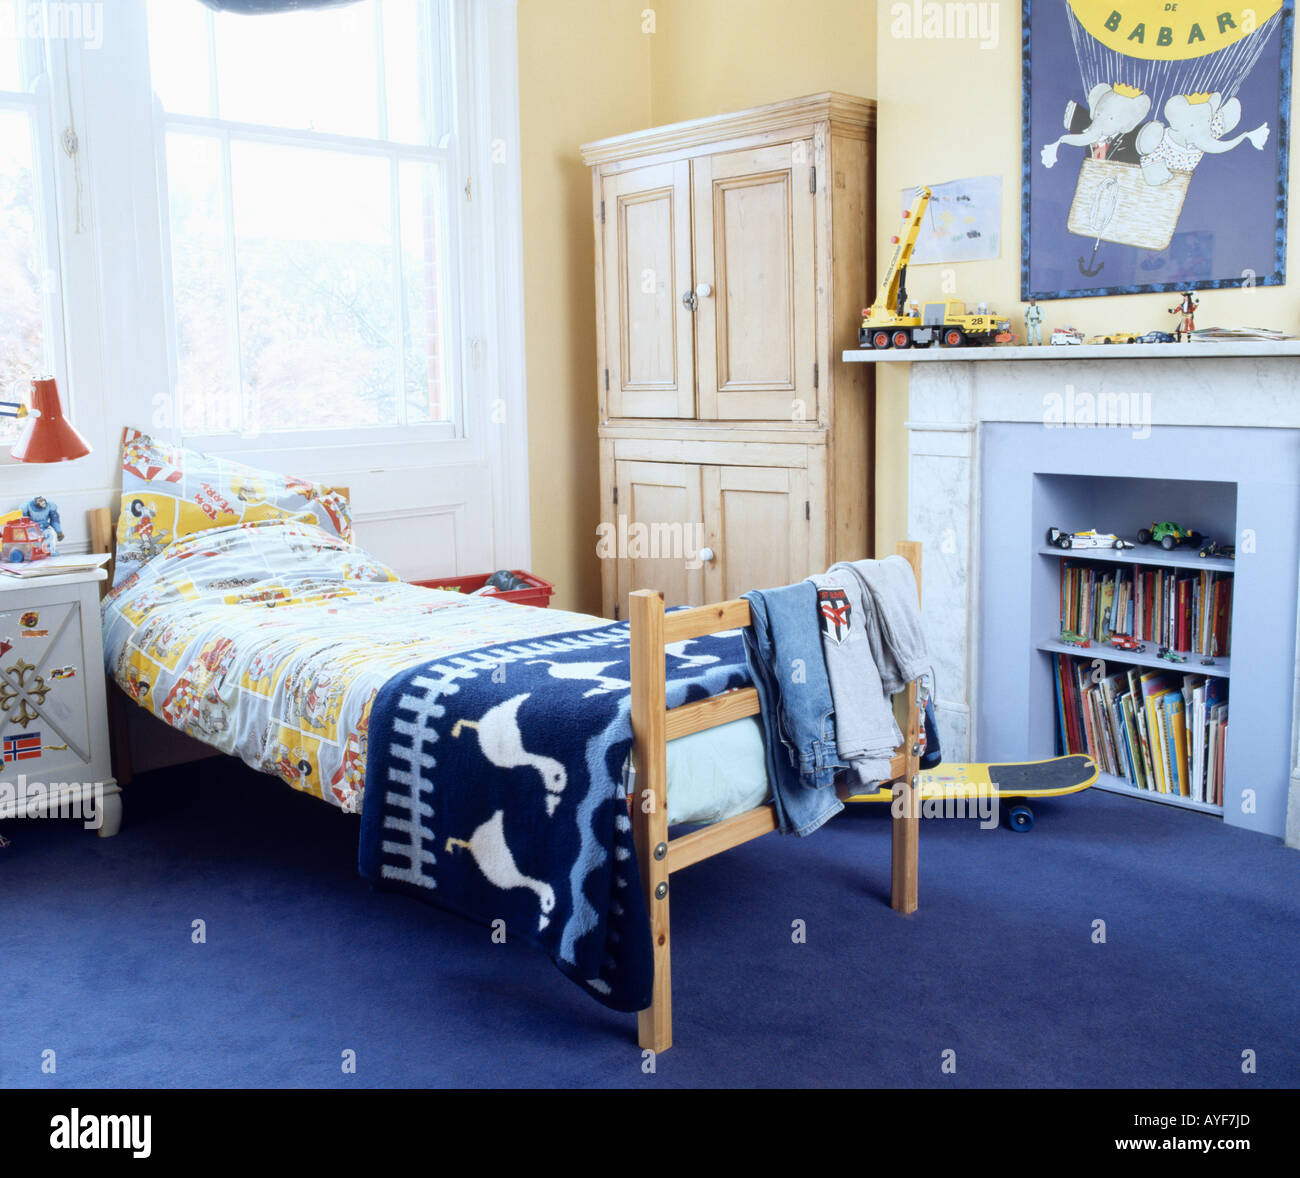 Children s bedroom with blue rug on bed and blue carpet with integral  shelves in fireplace. Children s bedroom with blue rug on bed and blue carpet with